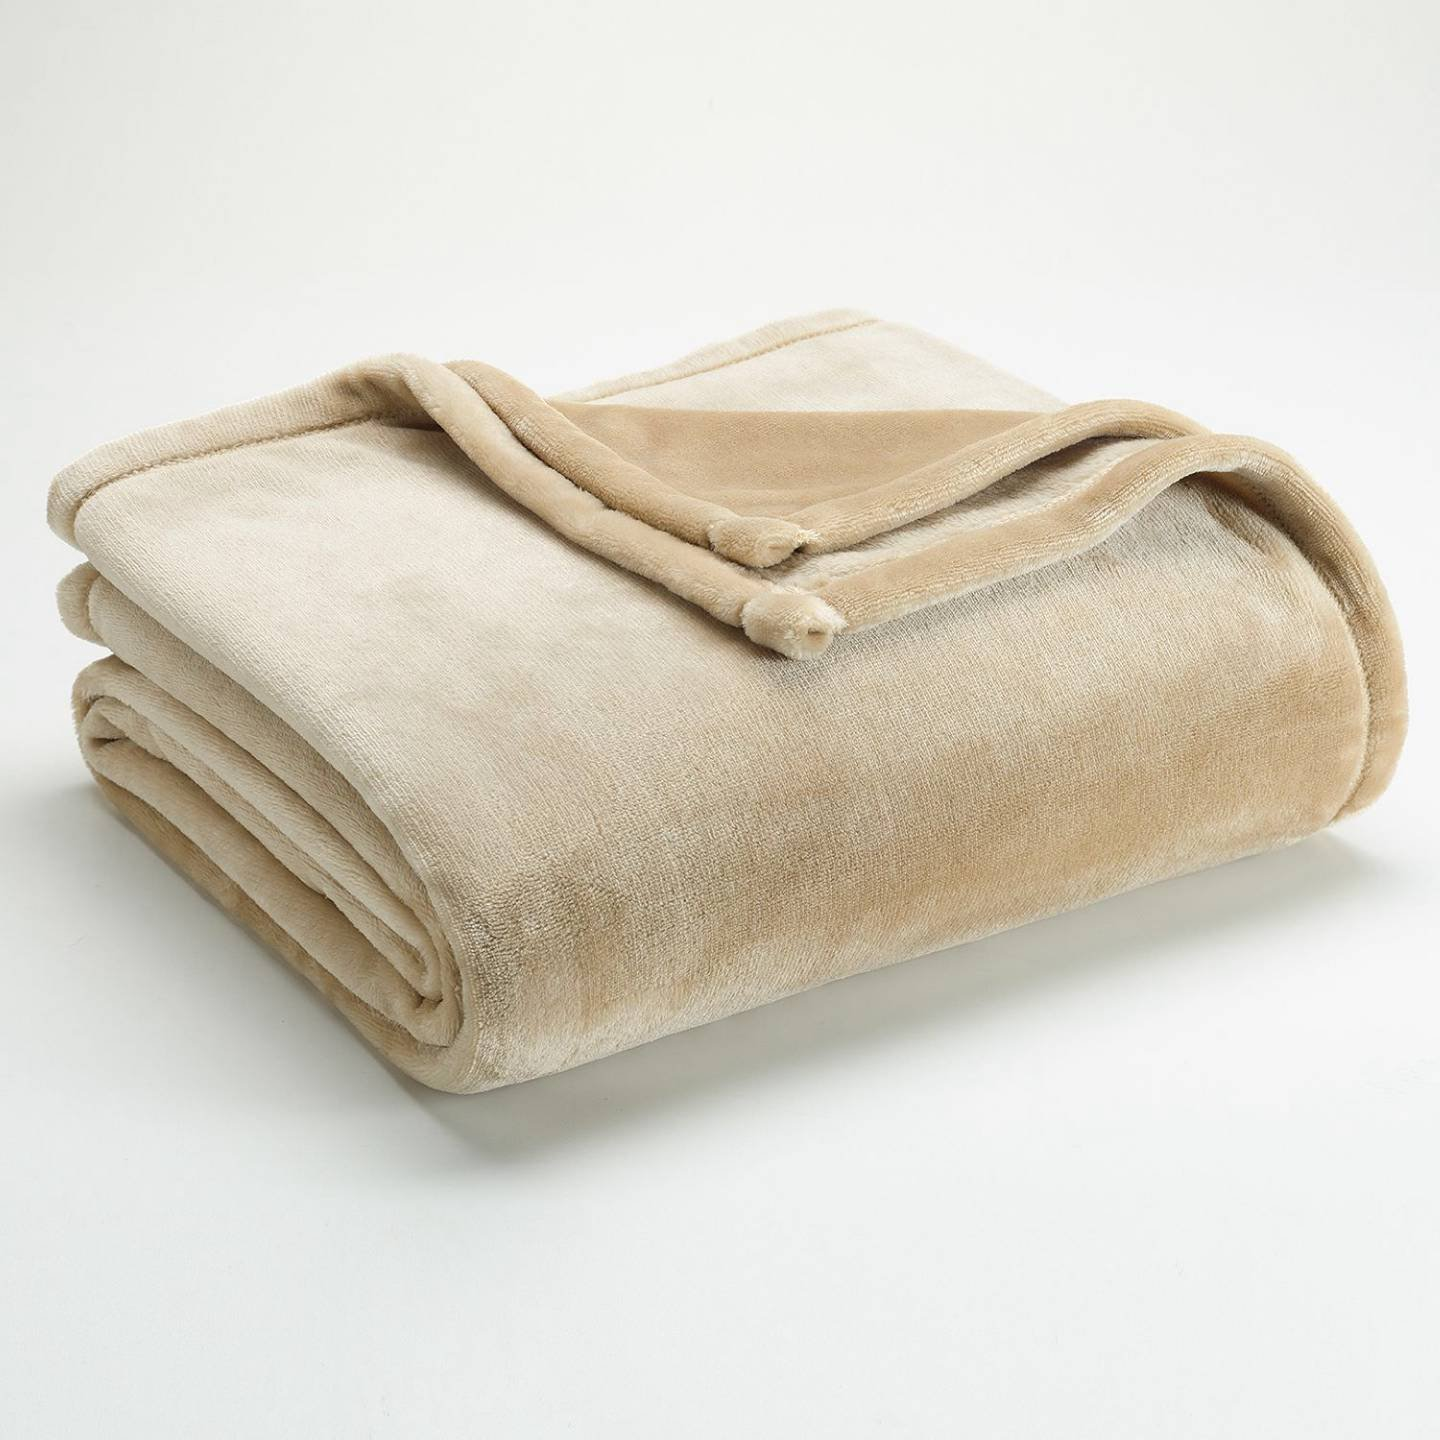 The Big One Super Soft Plush Throw Khaki by The Big One [並行輸入品] B00QFU2T9O